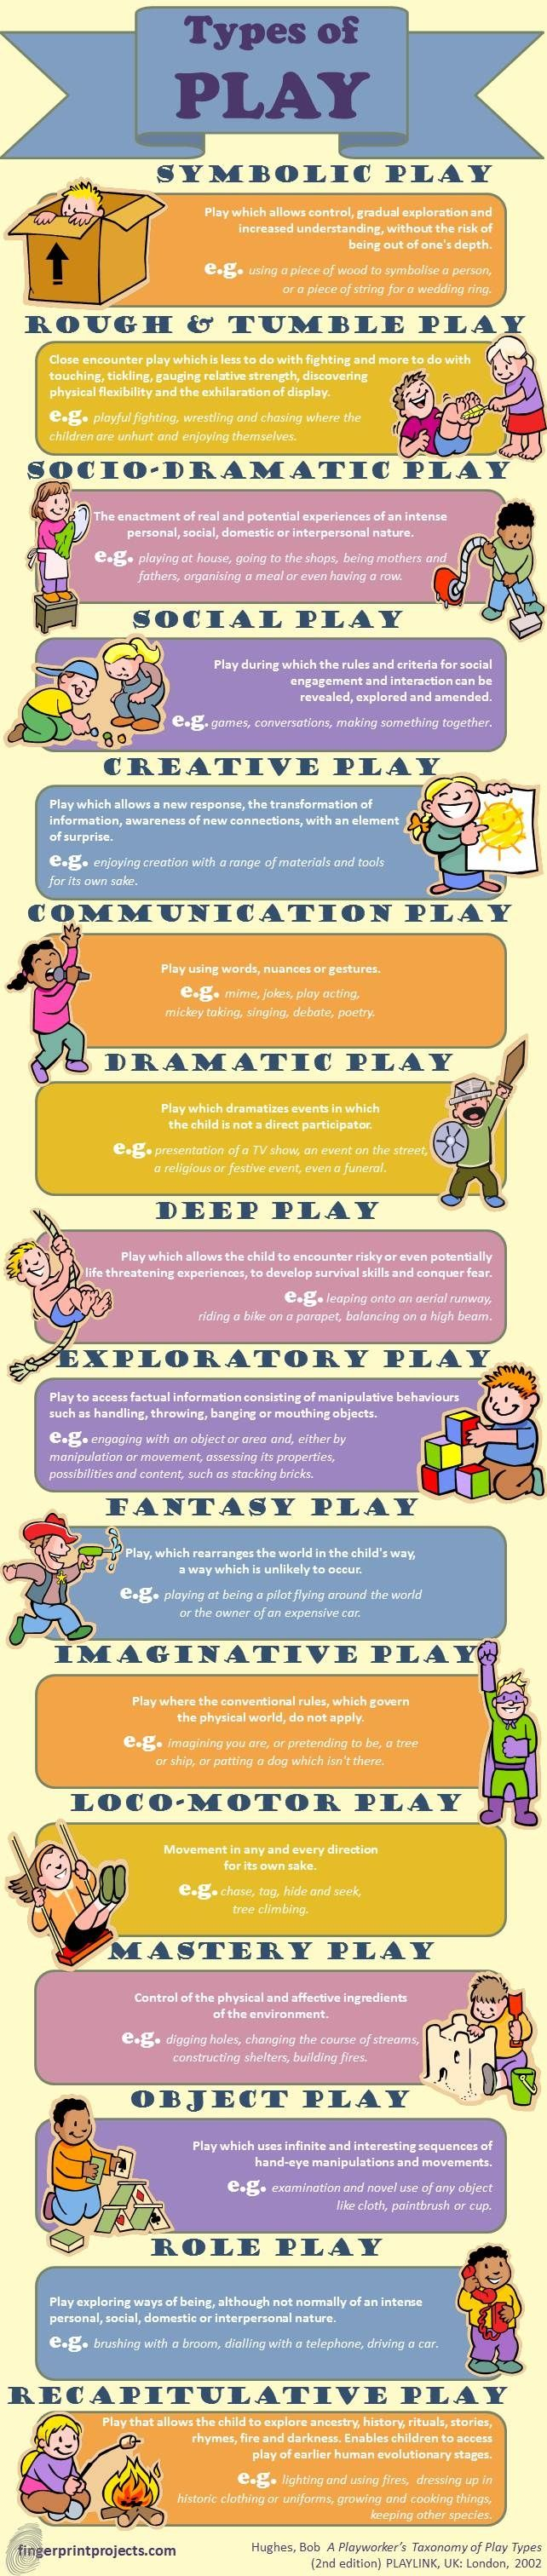 Types of Play - Lil' Kidz Early Childhood Education News and Reviews.